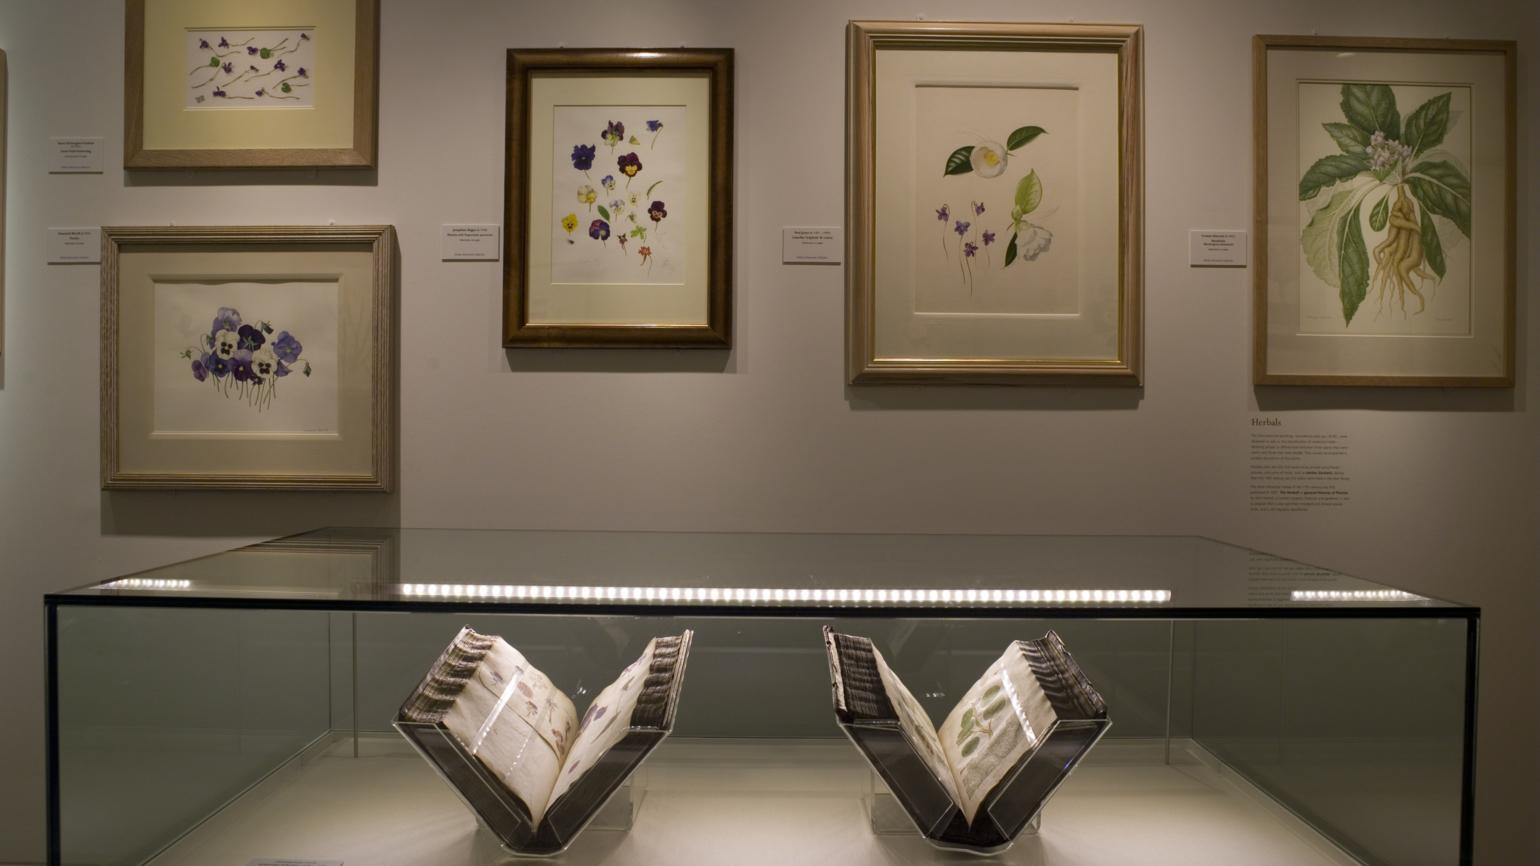 Books and paintings on display in the Shirley Sherwood Gallery of Botanical Art